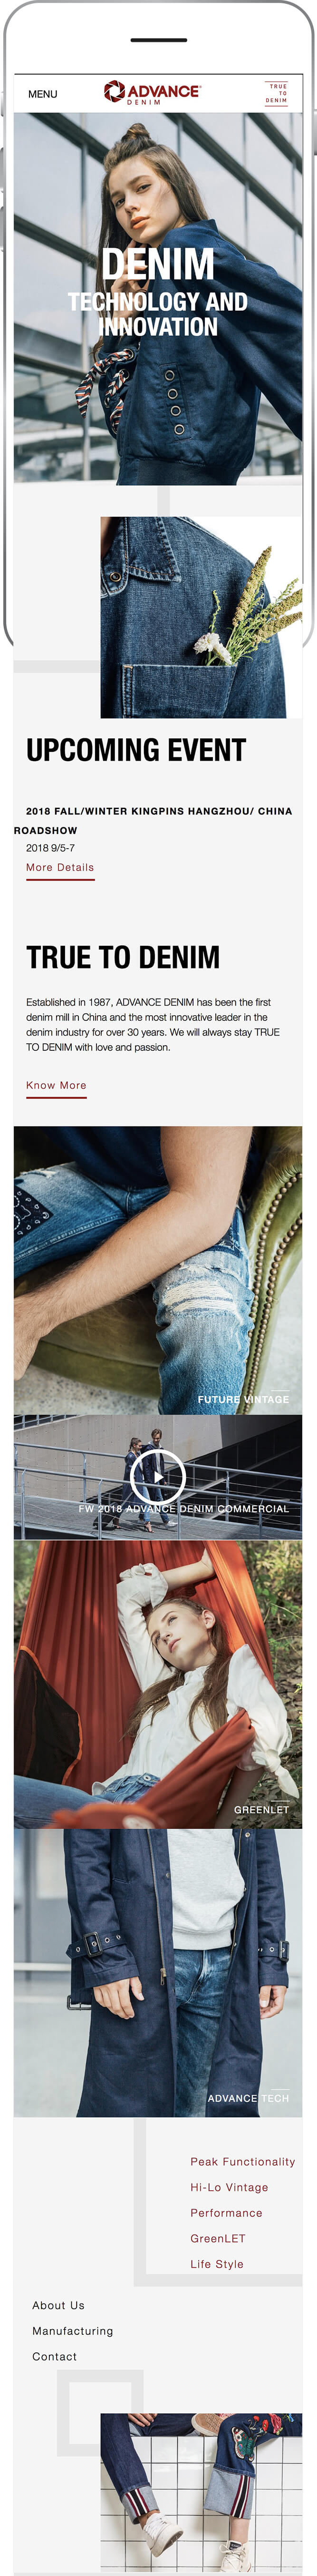 advance_denim-detailpage-05.jpg